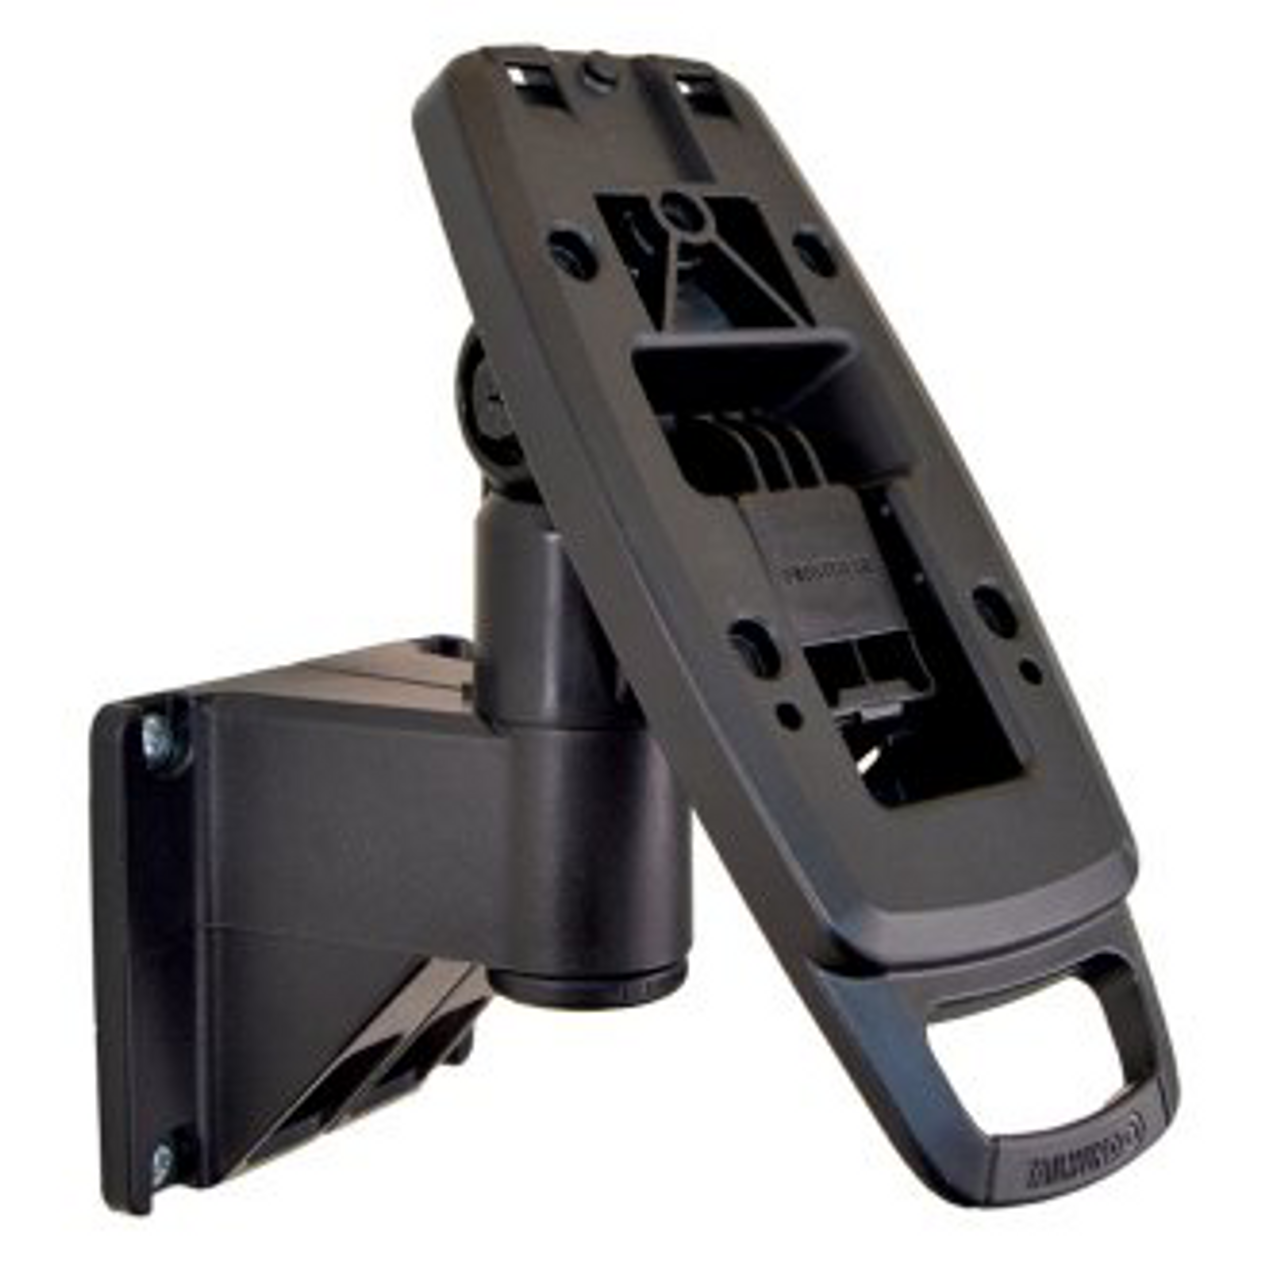 PAX S300 First Base Contour Wall Mount by Tailwind